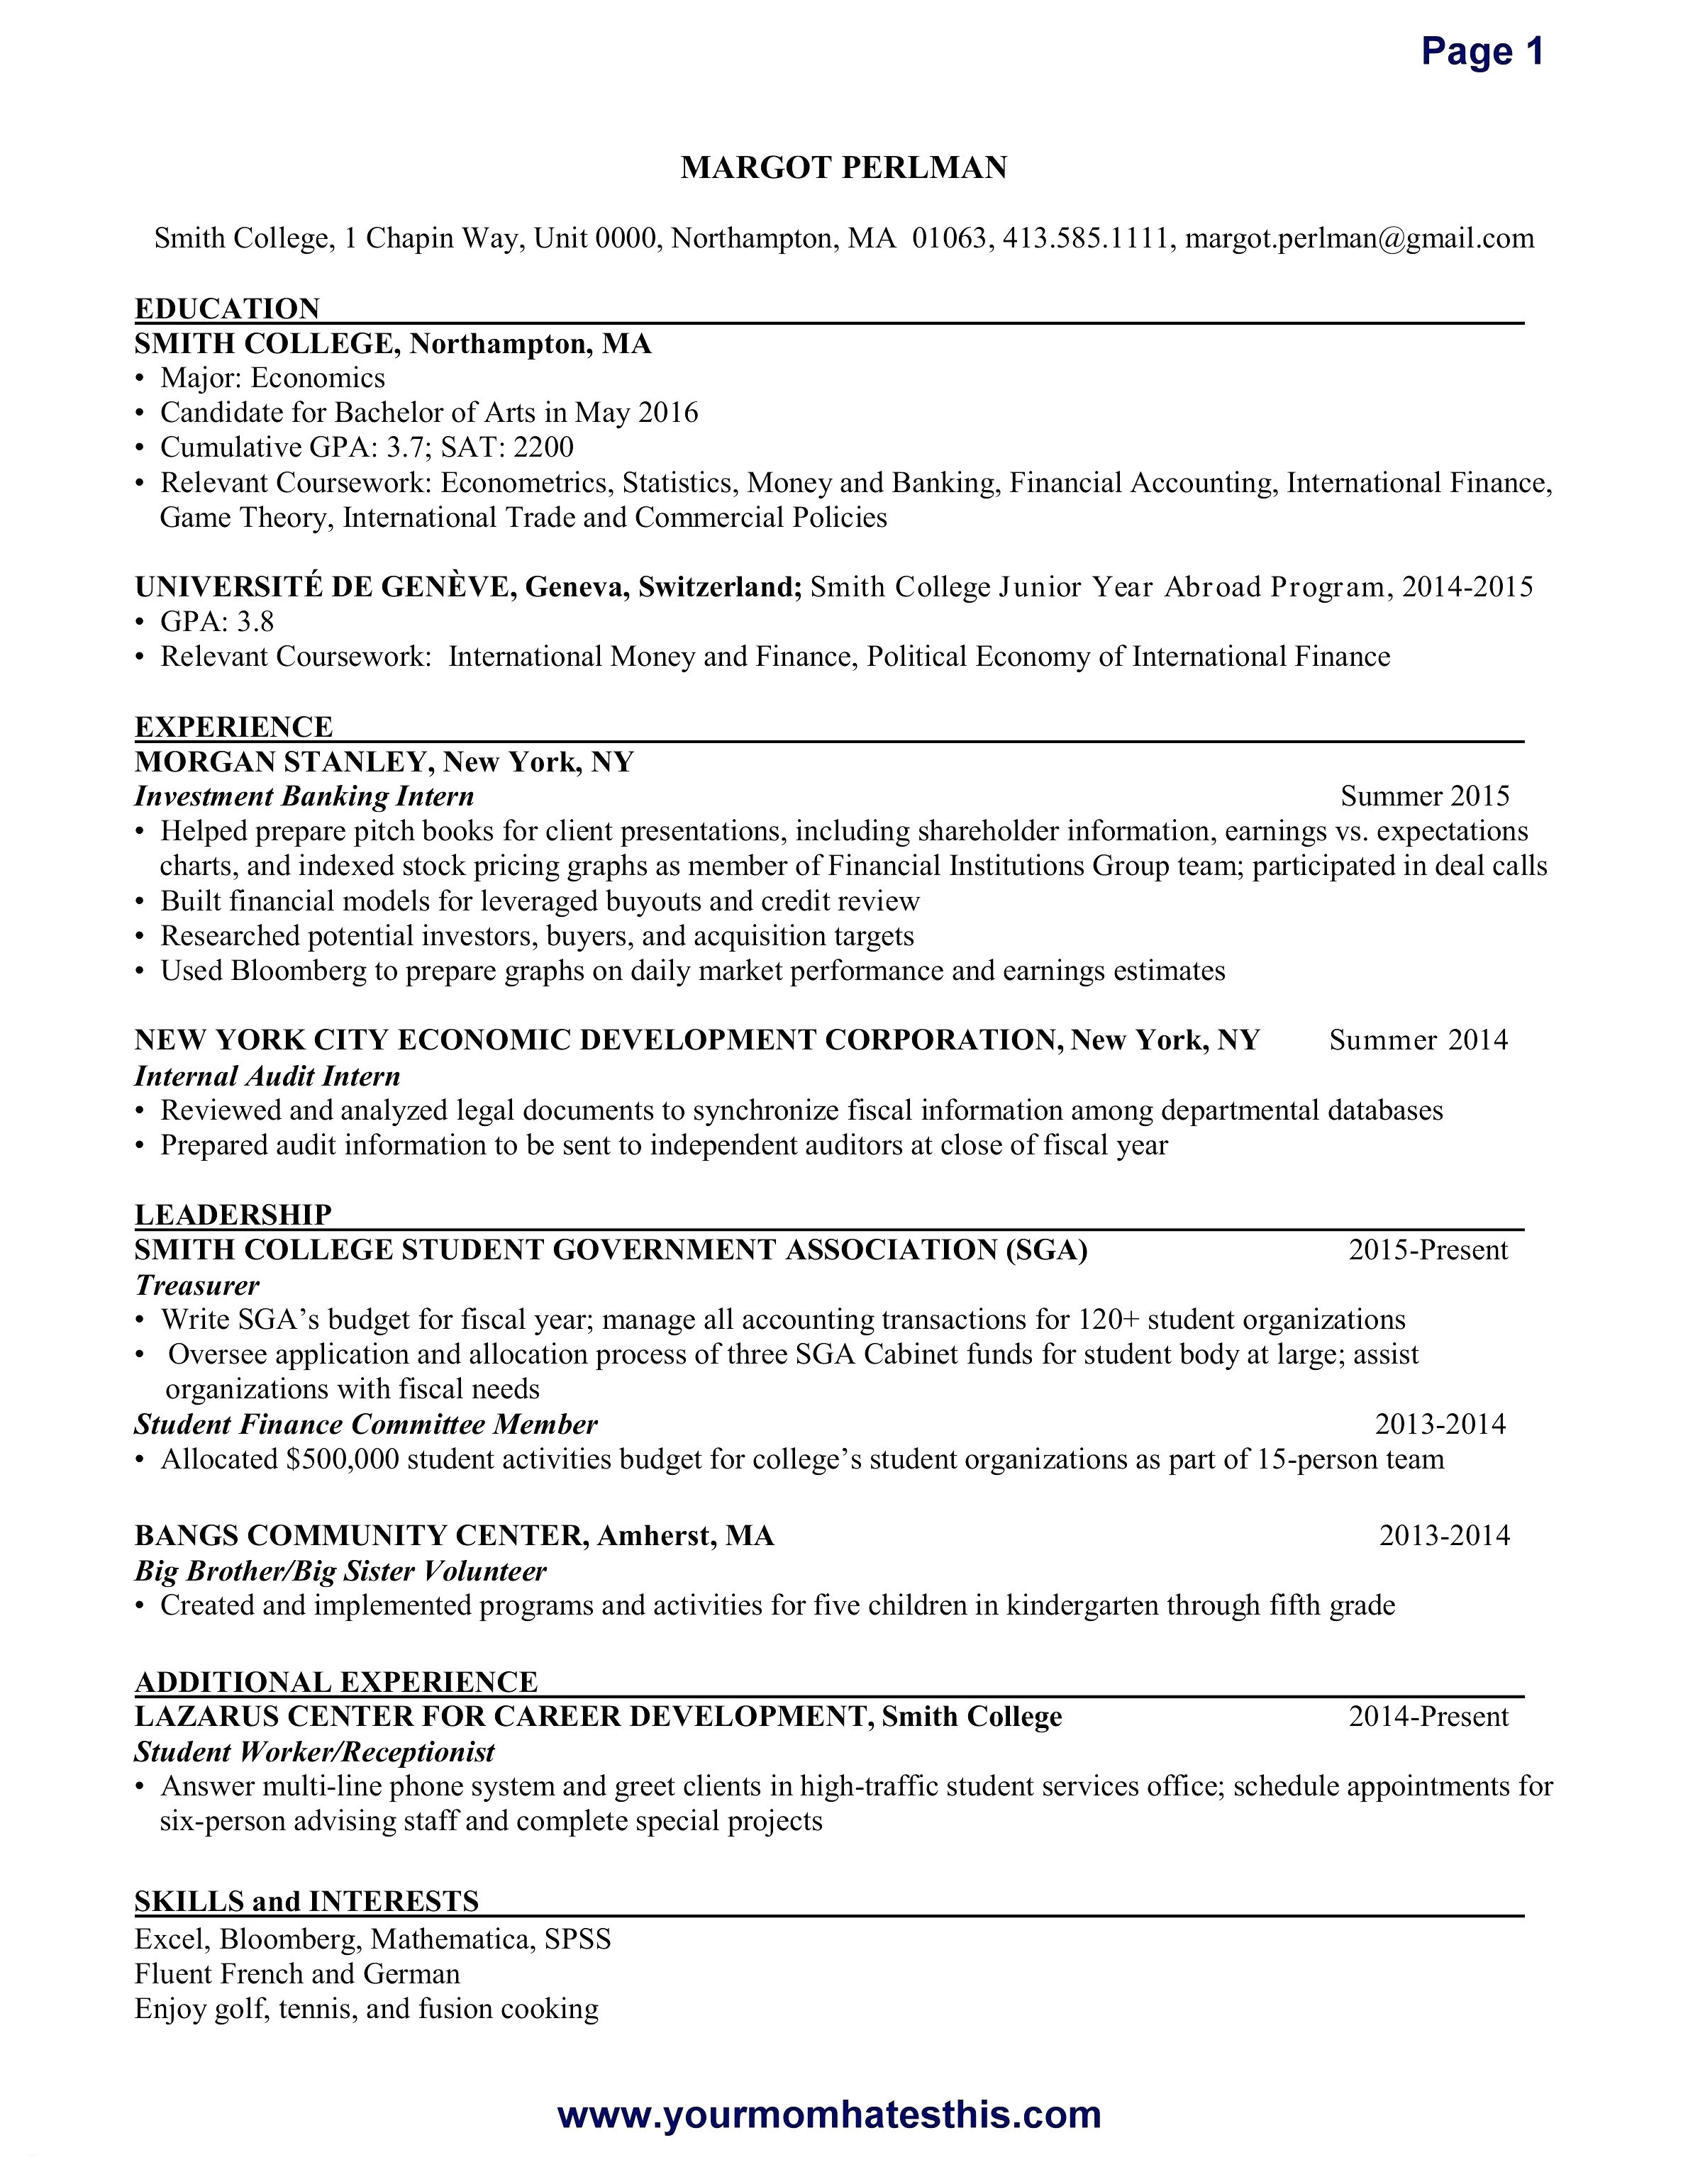 Veteran Resume Template - Awesome Security Ficer Resume Sample